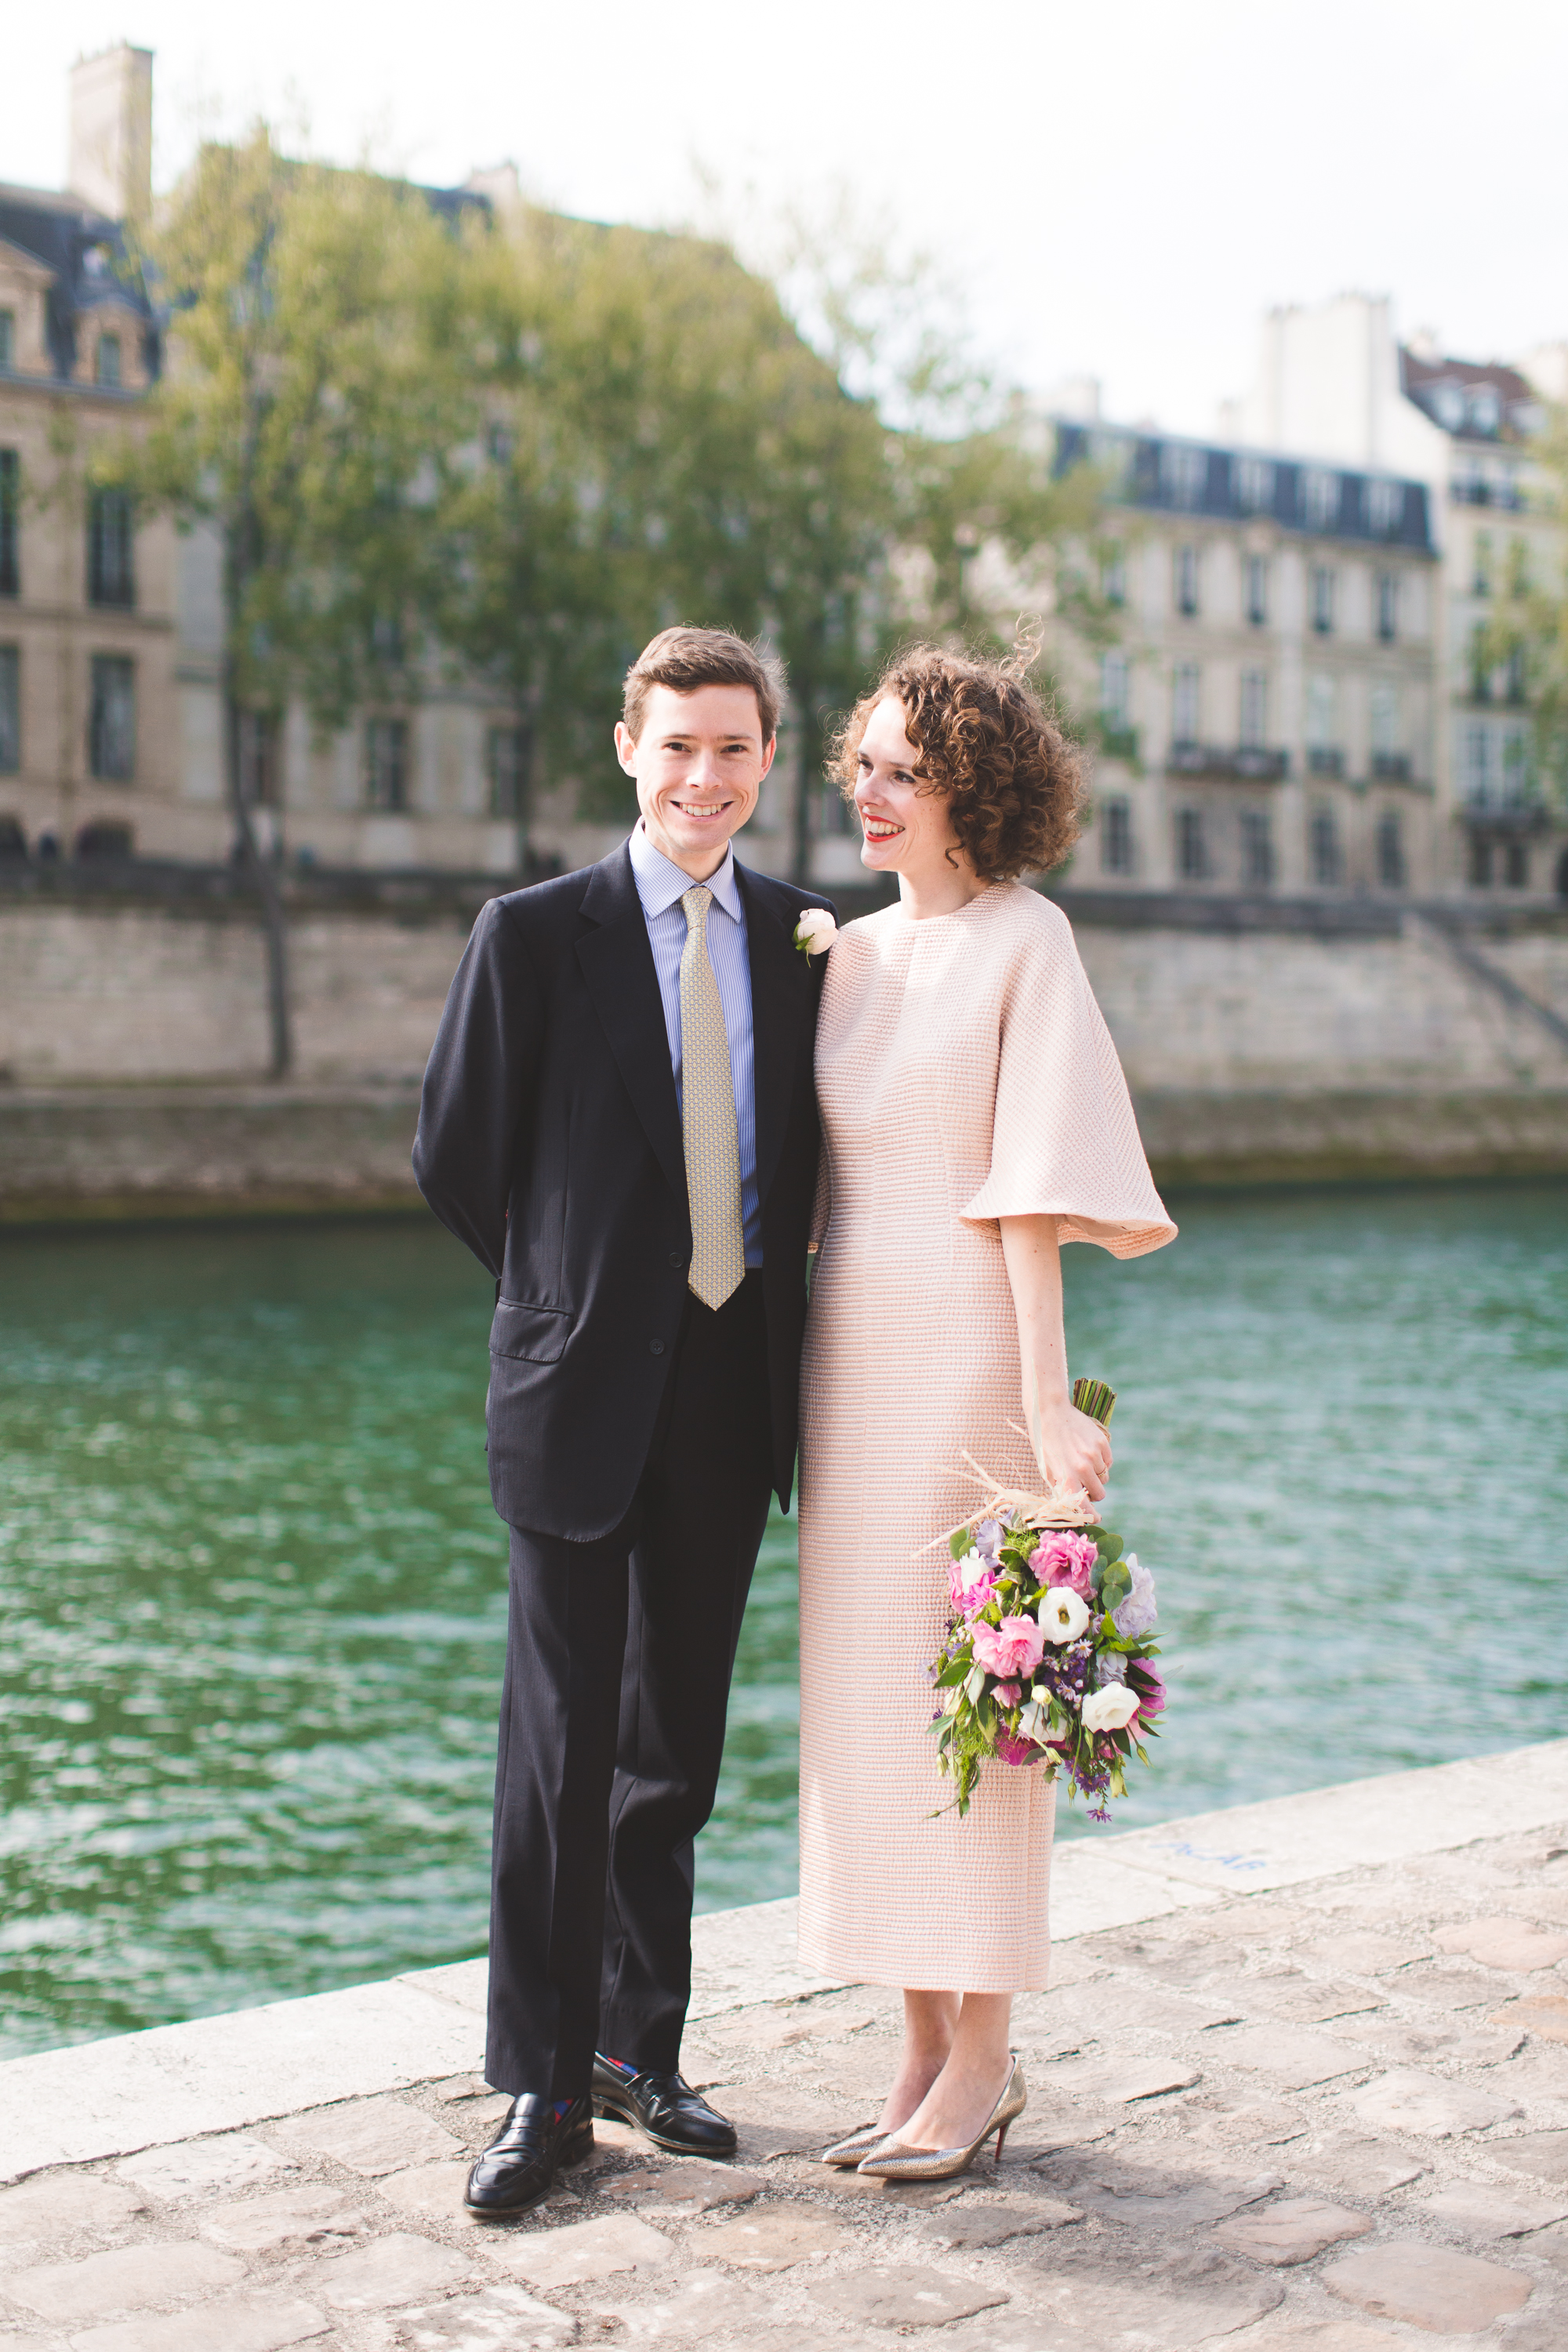 Emma&Nico_WeddingParis_by_UlaBlocksage-171.jpg